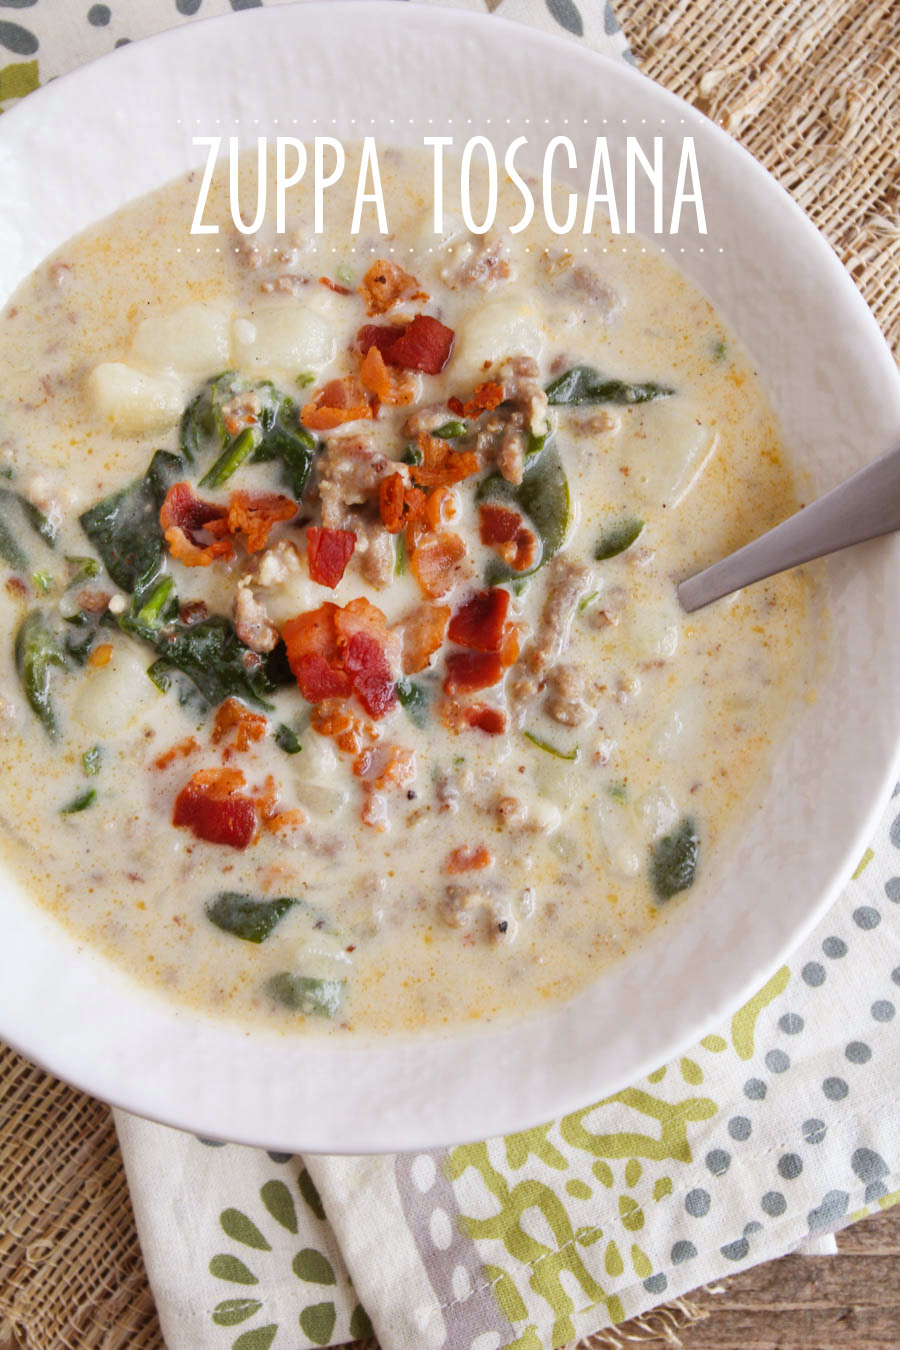 This copycat zuppa toscana is so savory and filling - a delicious combination of flavors!